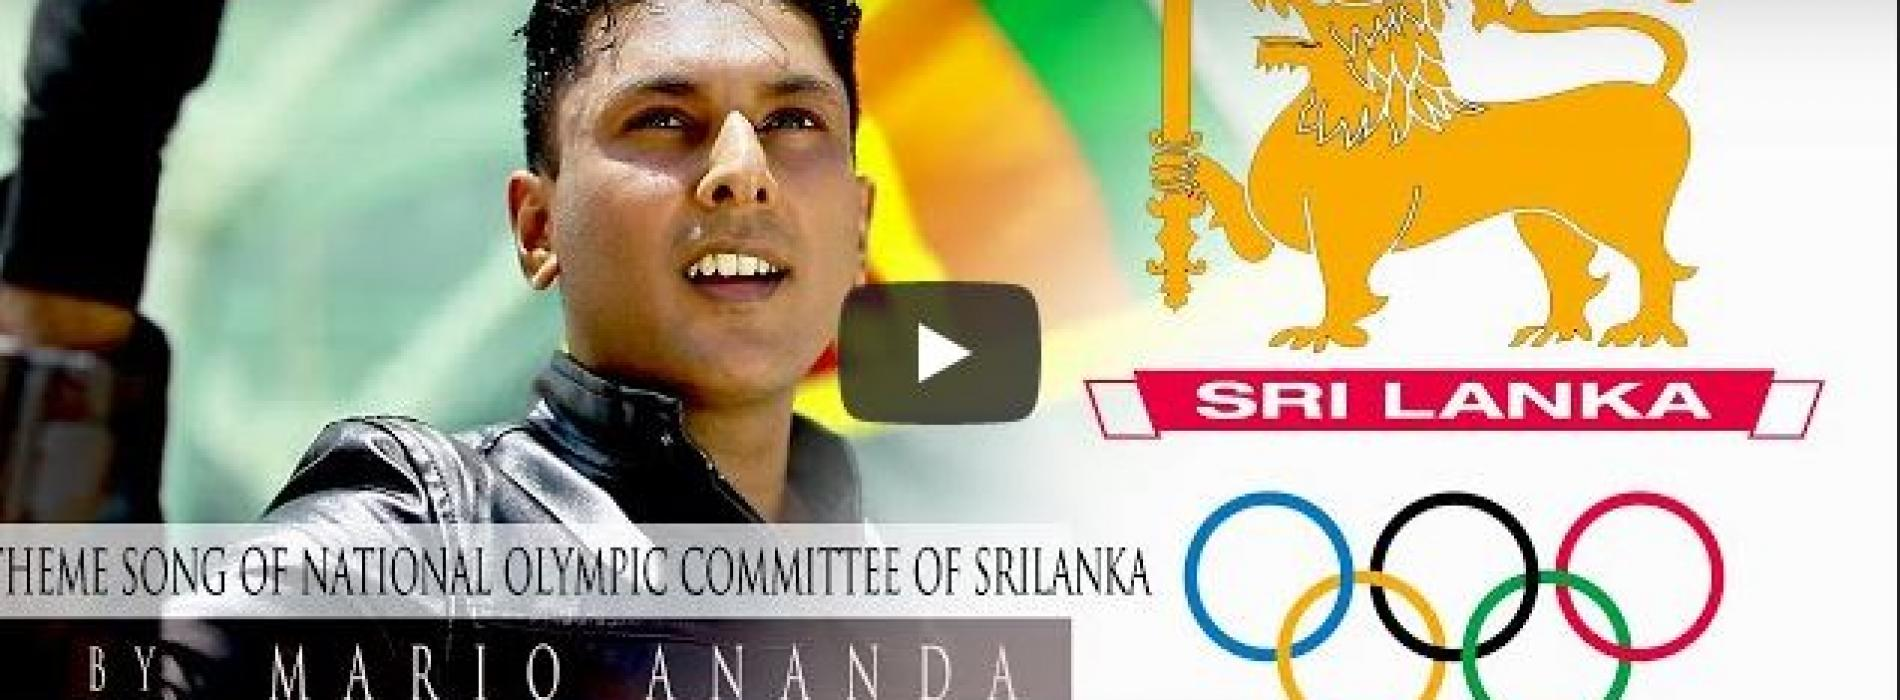 New Music : Theme Song Of National Olympic Committee Of Sri Lanka By Mario Ananda